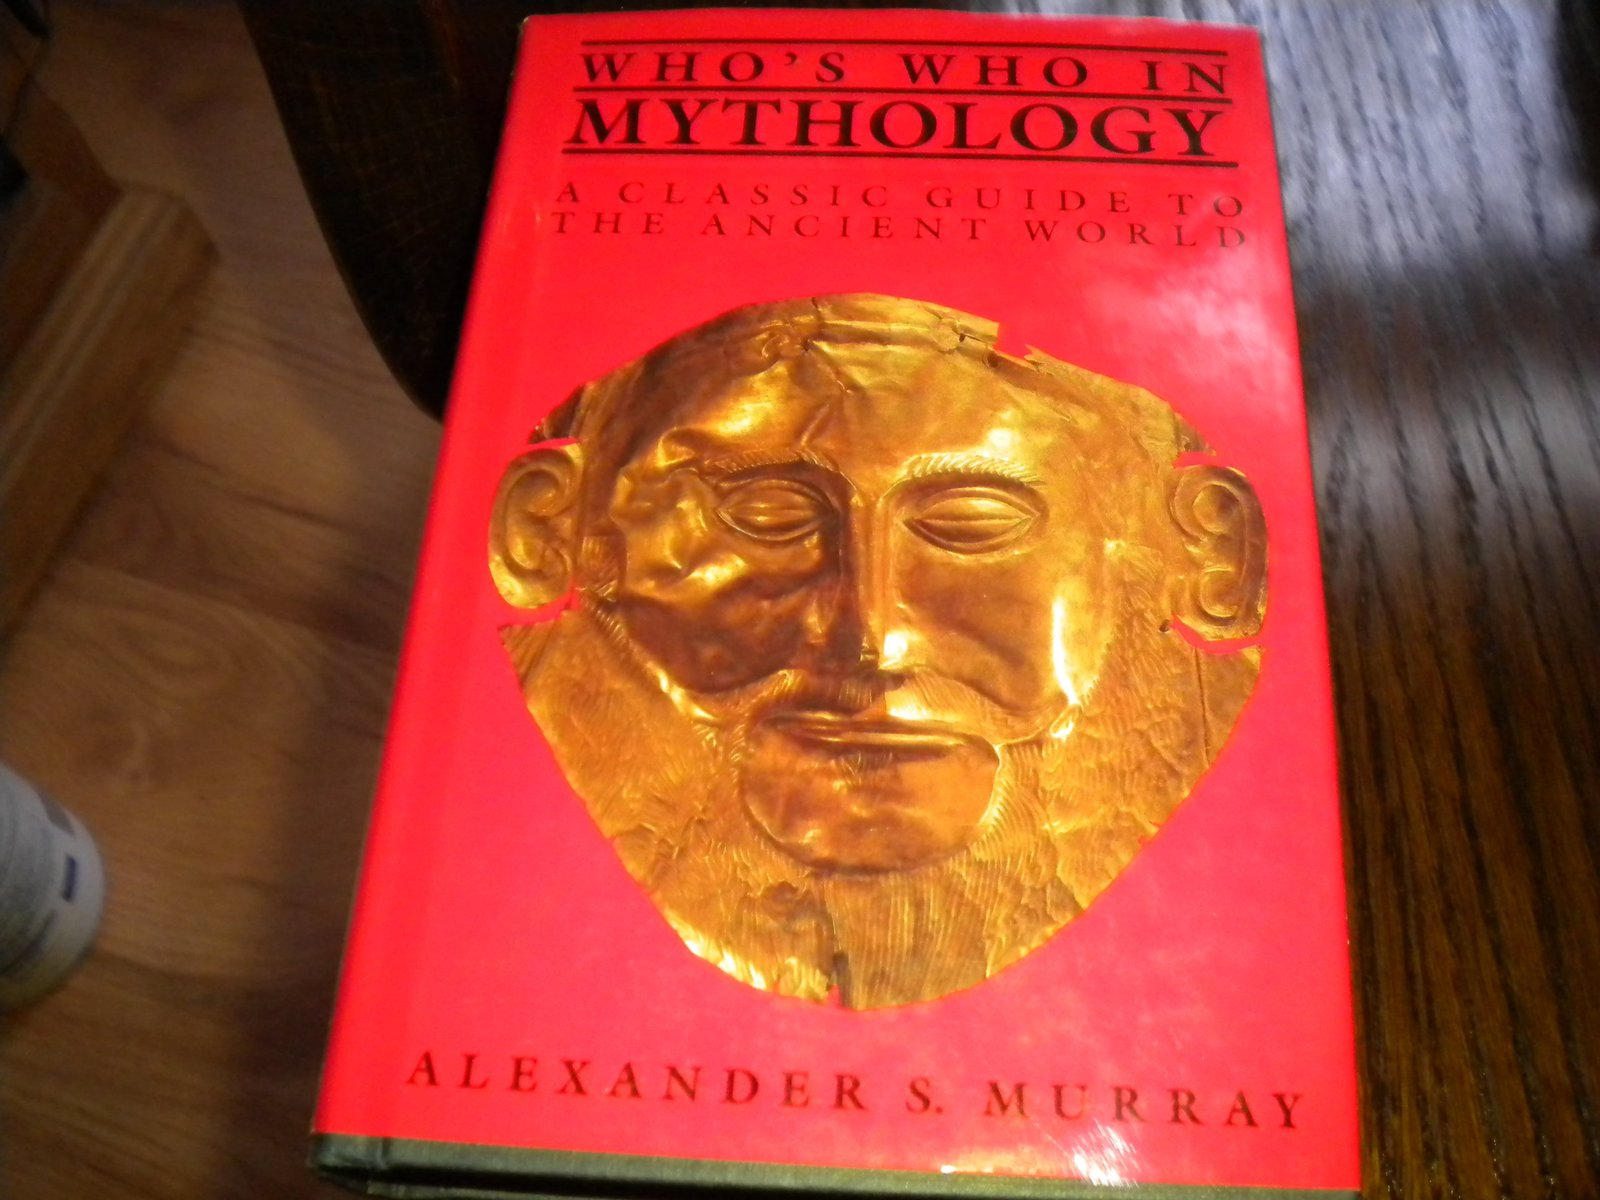 Who's Who in Mythology: A Classic Guide to the Ancient World [Sep 11, 1988] A...